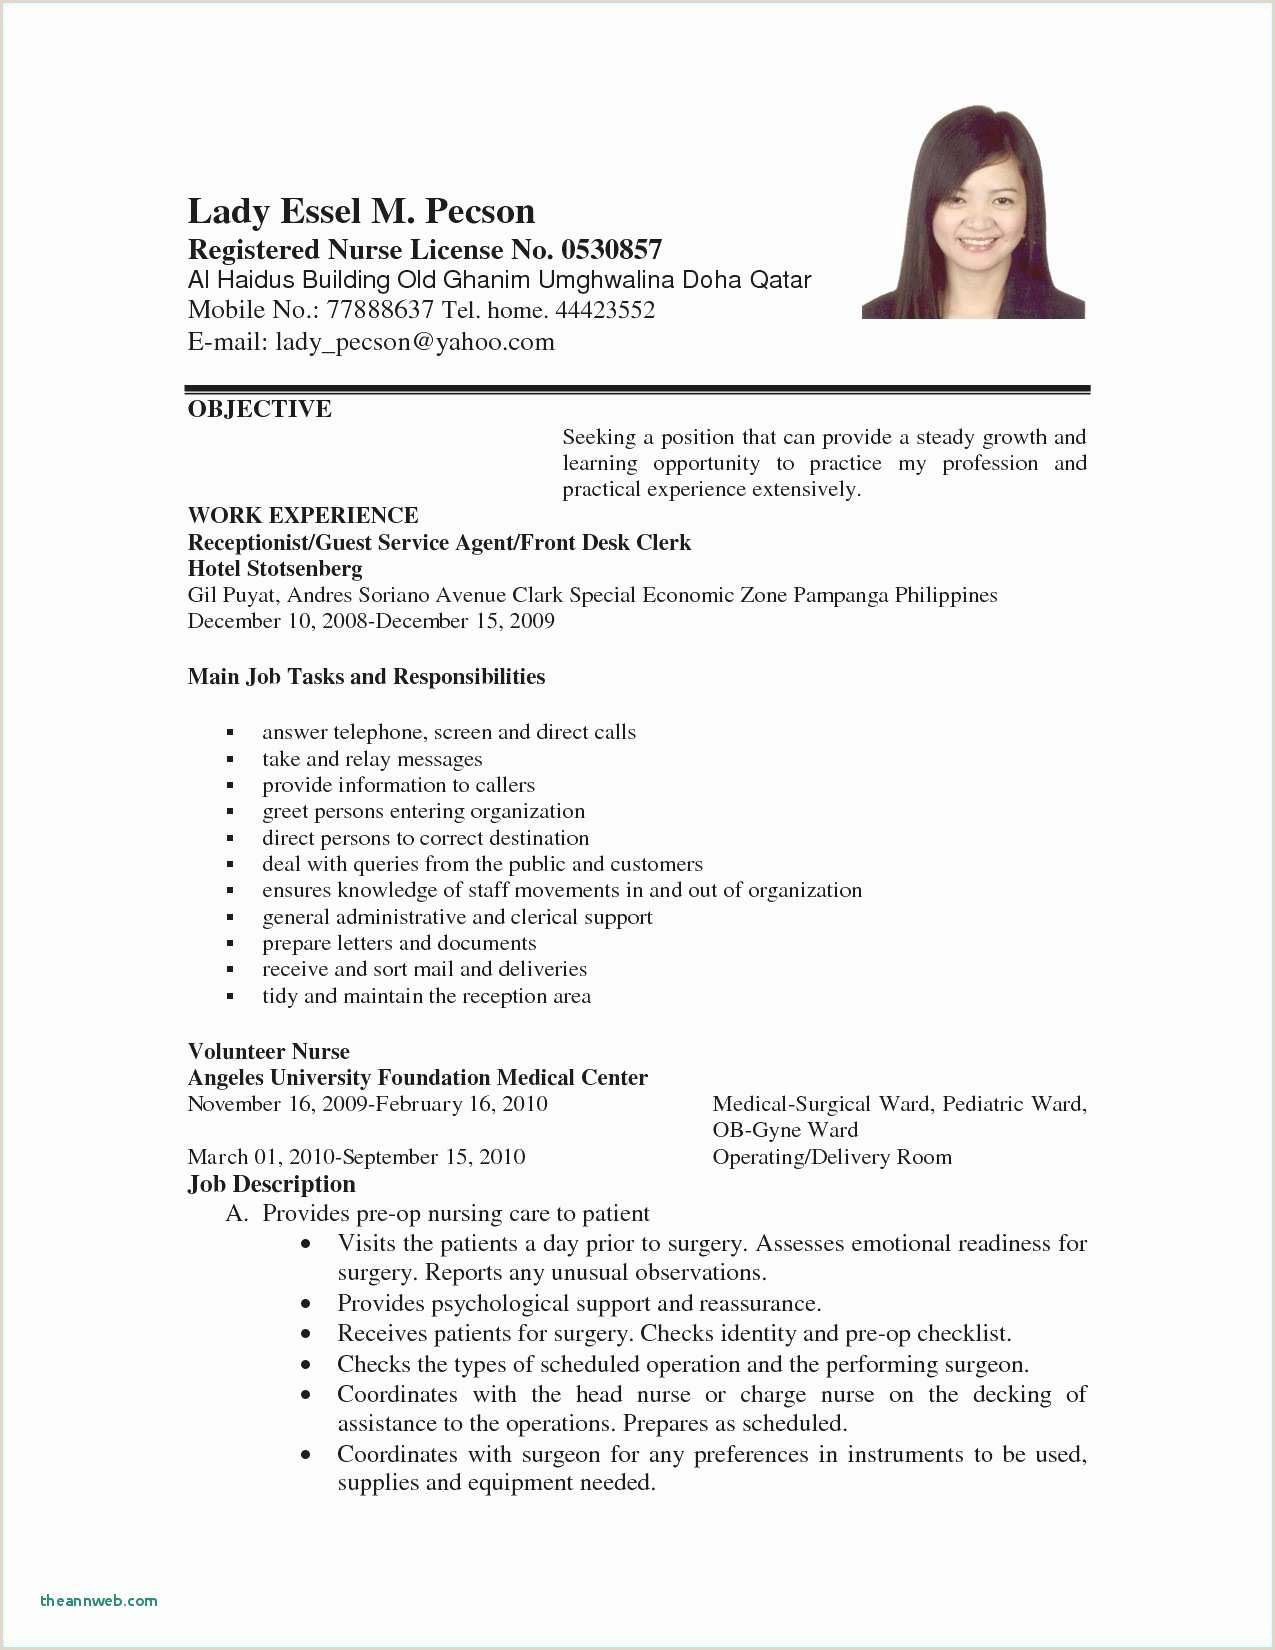 10 police officer responsibilities resume